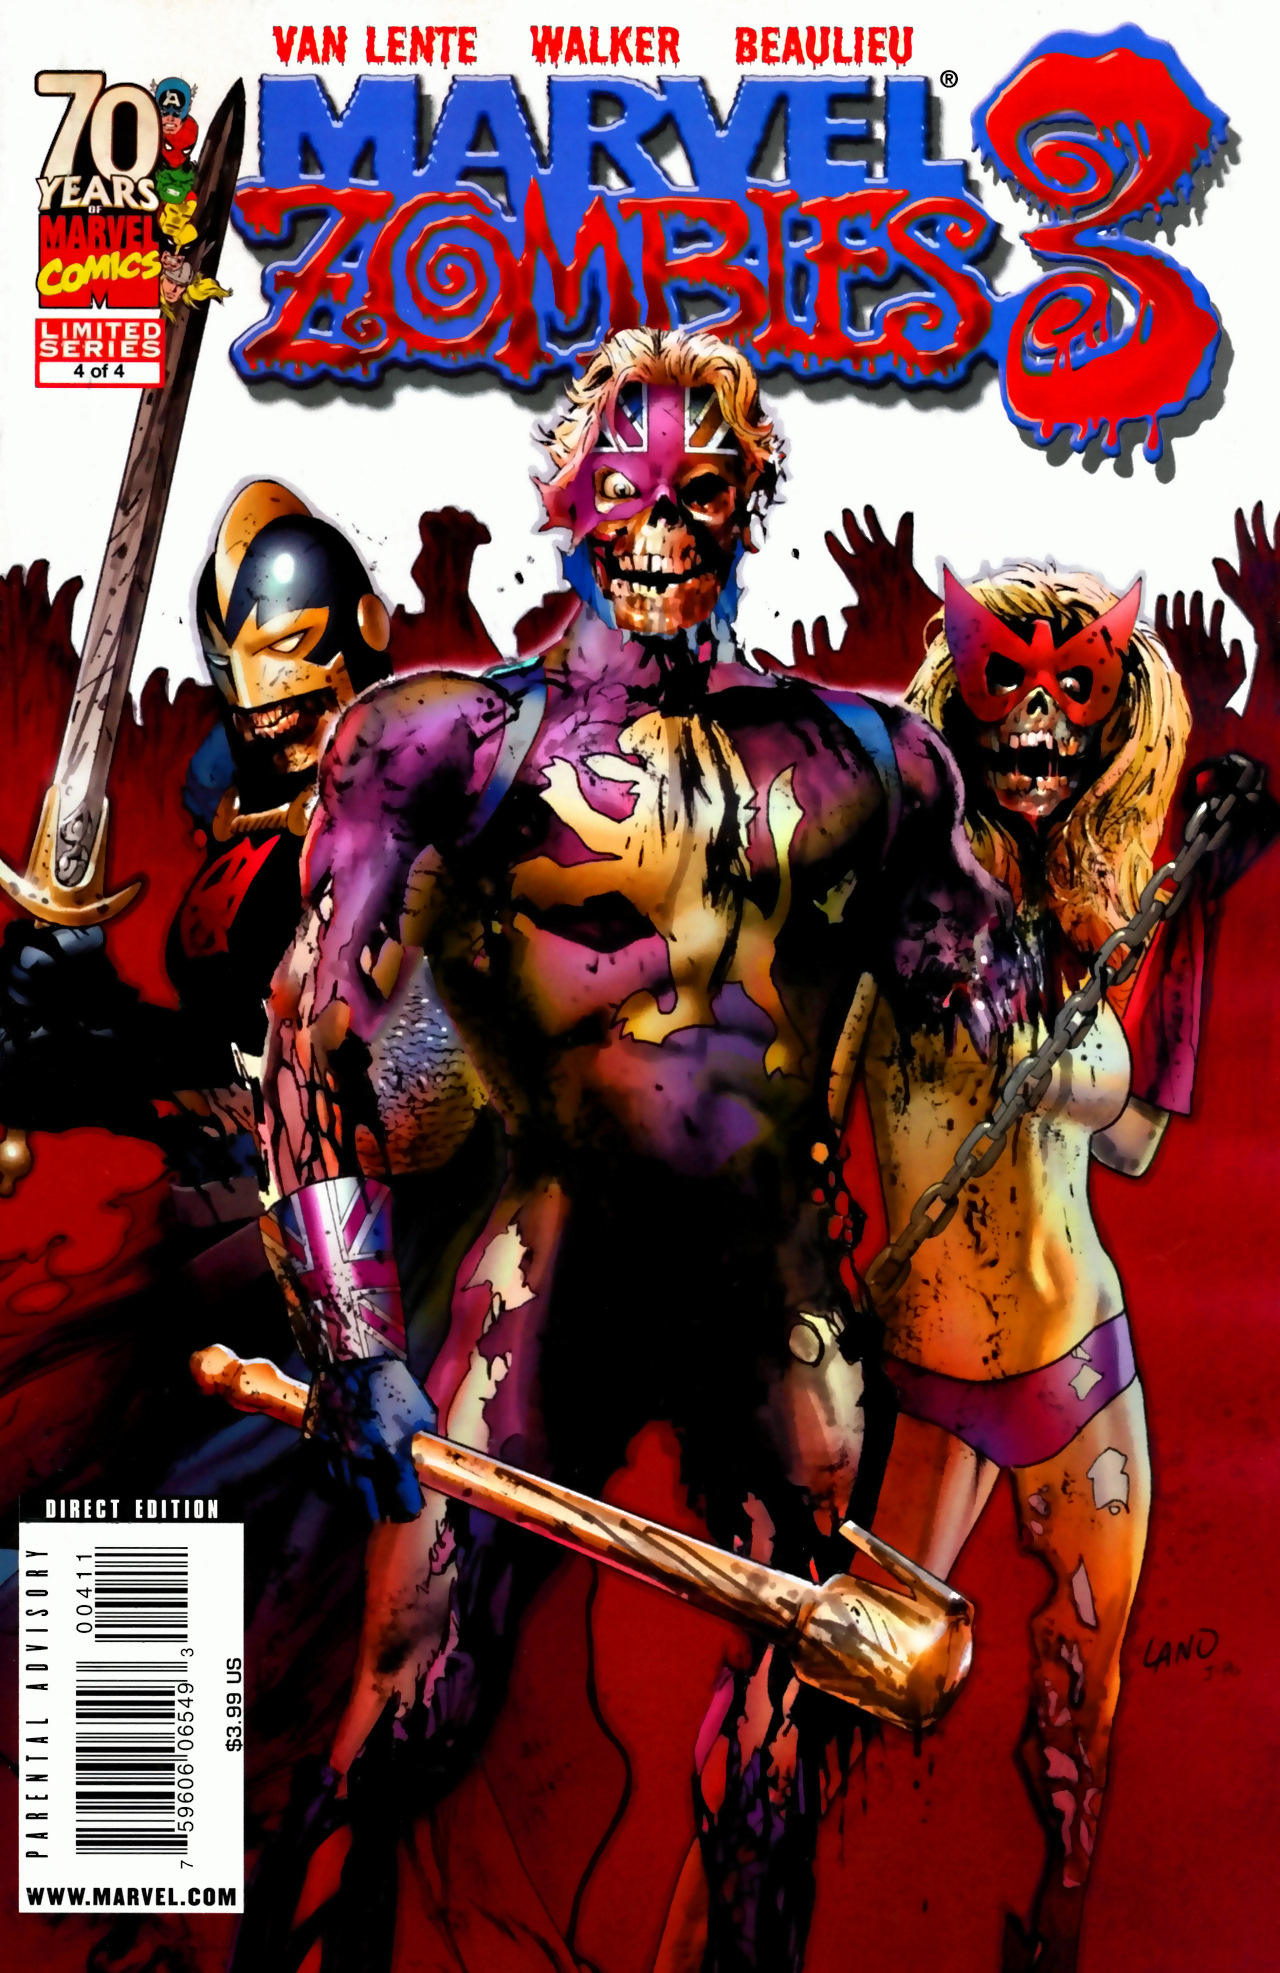 Marvel zombies 3 vol 1 4 marvel comics database